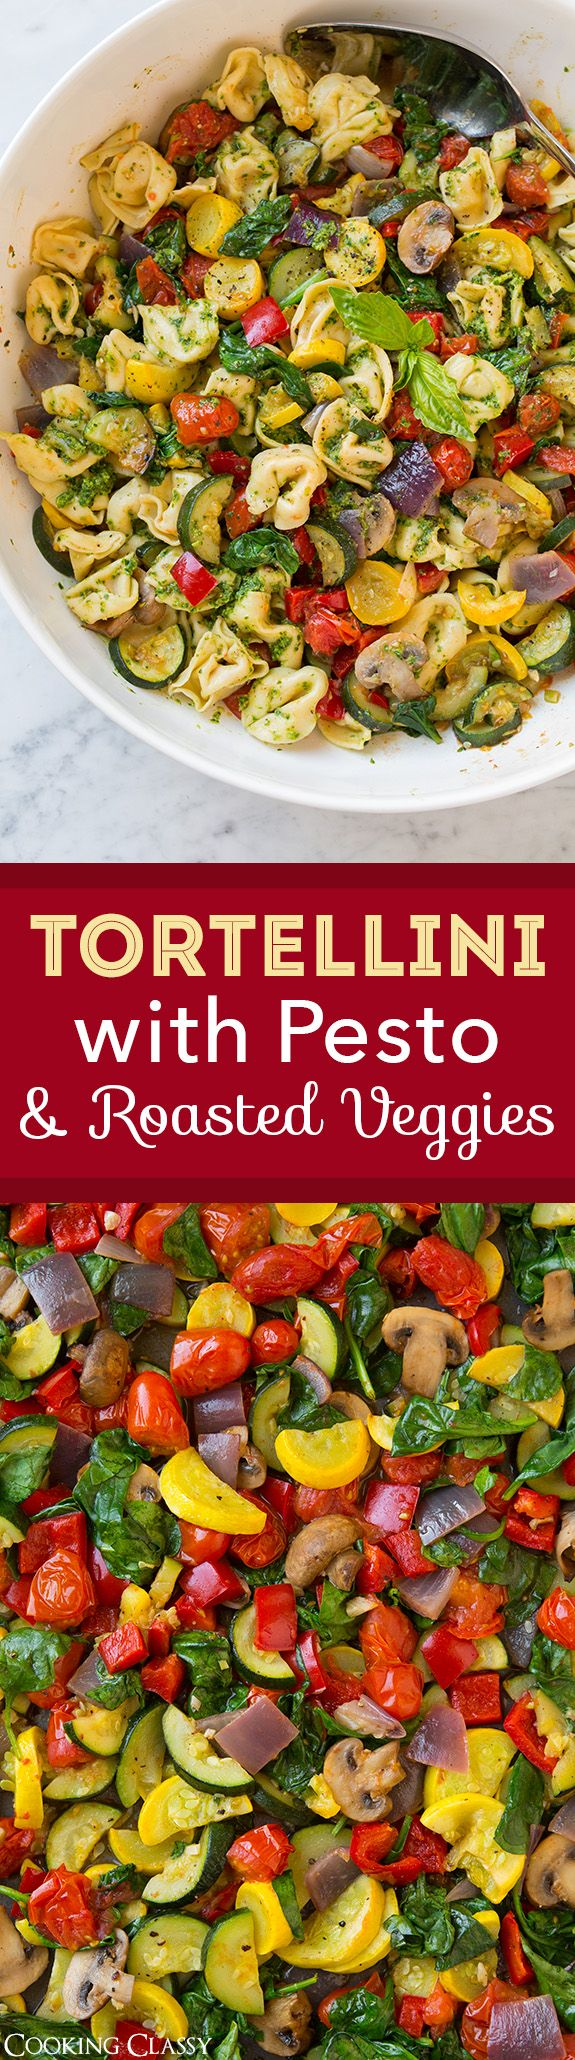 Tortellini with Pesto and Roasted Veggies - So flavorful and delicious! Quick and easy to make!